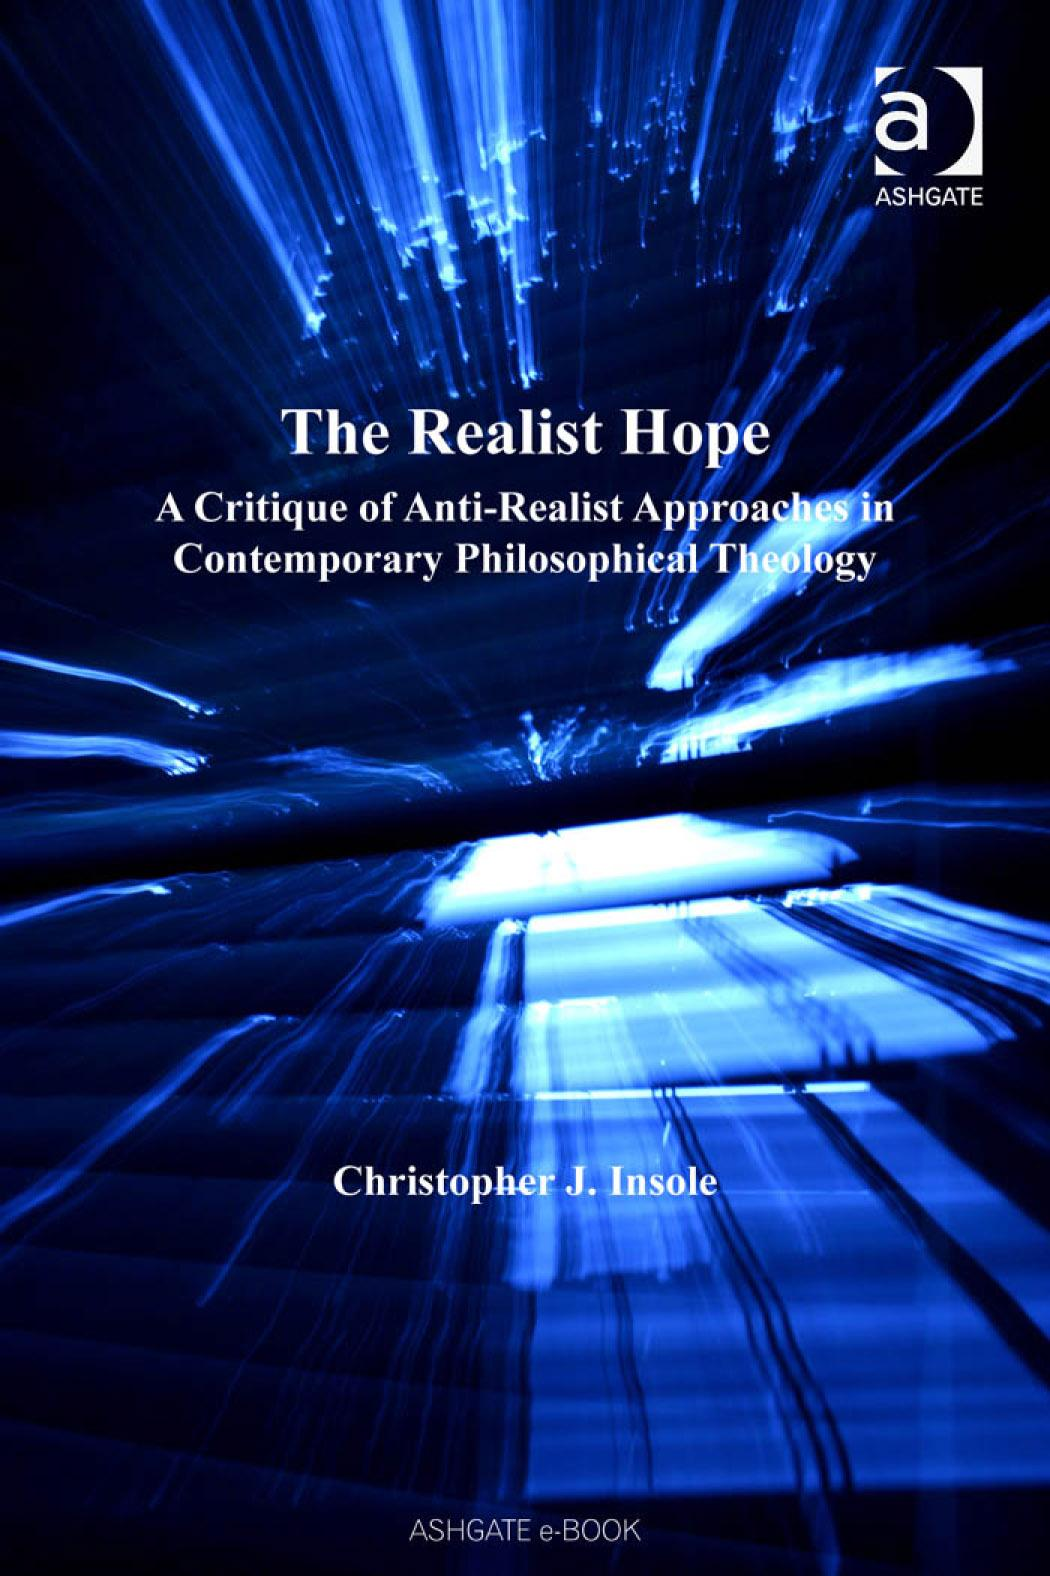 Realist Hope, The: A Critique of Anti-Realist Approaches in Contemporary Philosophical Theology. Heythrop Studies in Contemporary Philosophy, Religion EB9780754687924